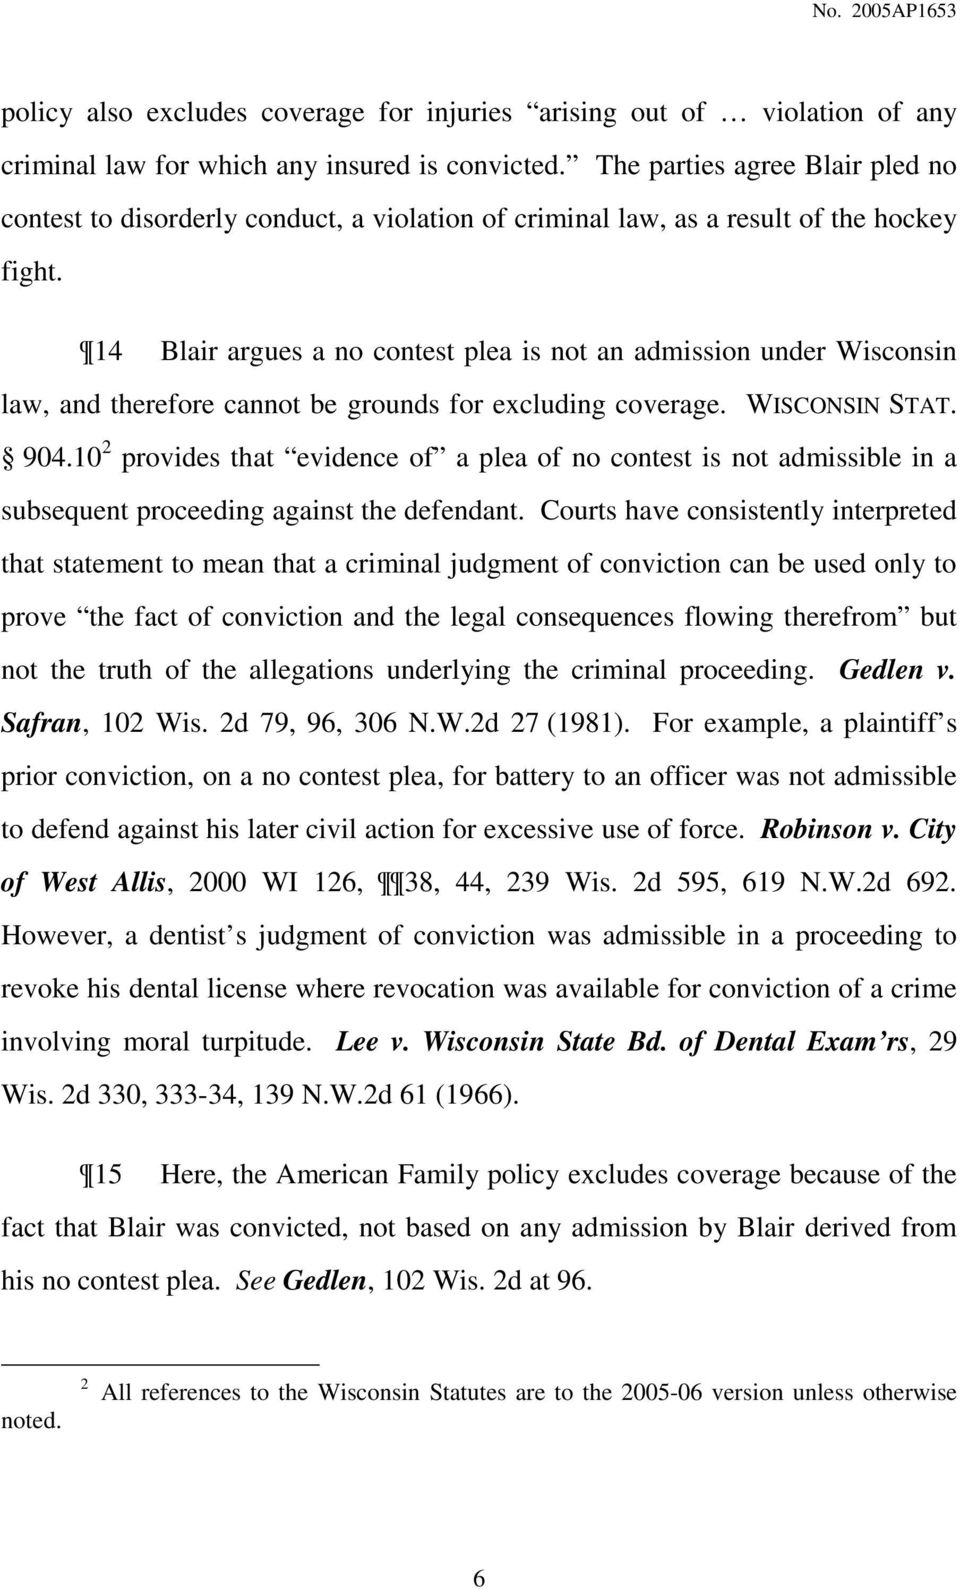 14 Blair argues a no contest plea is not an admission under Wisconsin law, and therefore cannot be grounds for excluding coverage. WISCONSIN STAT. 904.